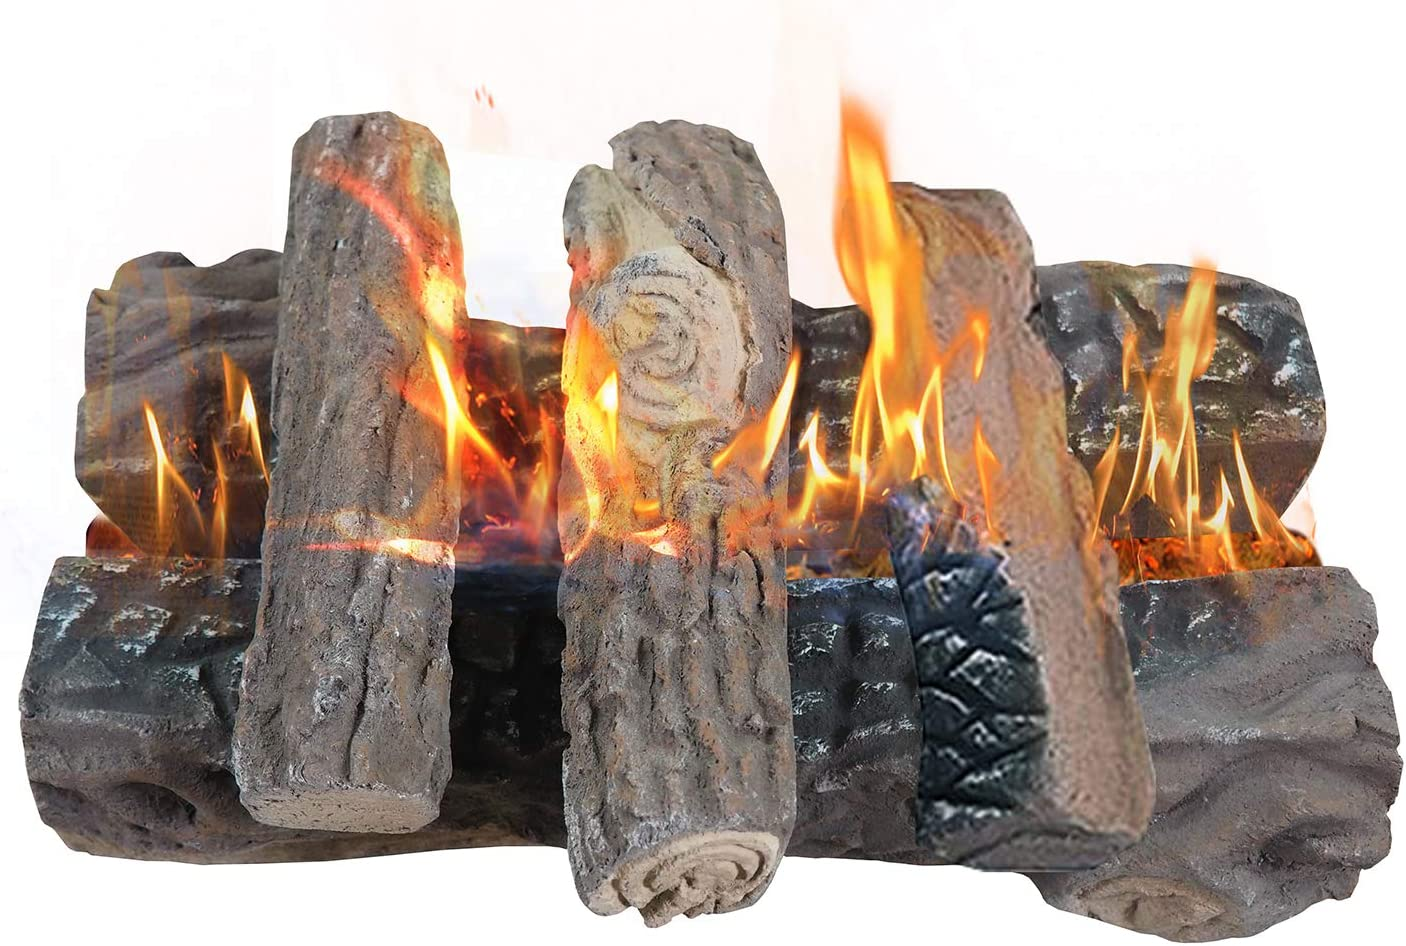 Gas Fireplace Logs, Large Ceramic Logs for Gas Fireplace, Artificial Realistic Firewood Logs Set of 5, Indoor Outdoor for Fireplace Firepit, Ventless & Vent Free